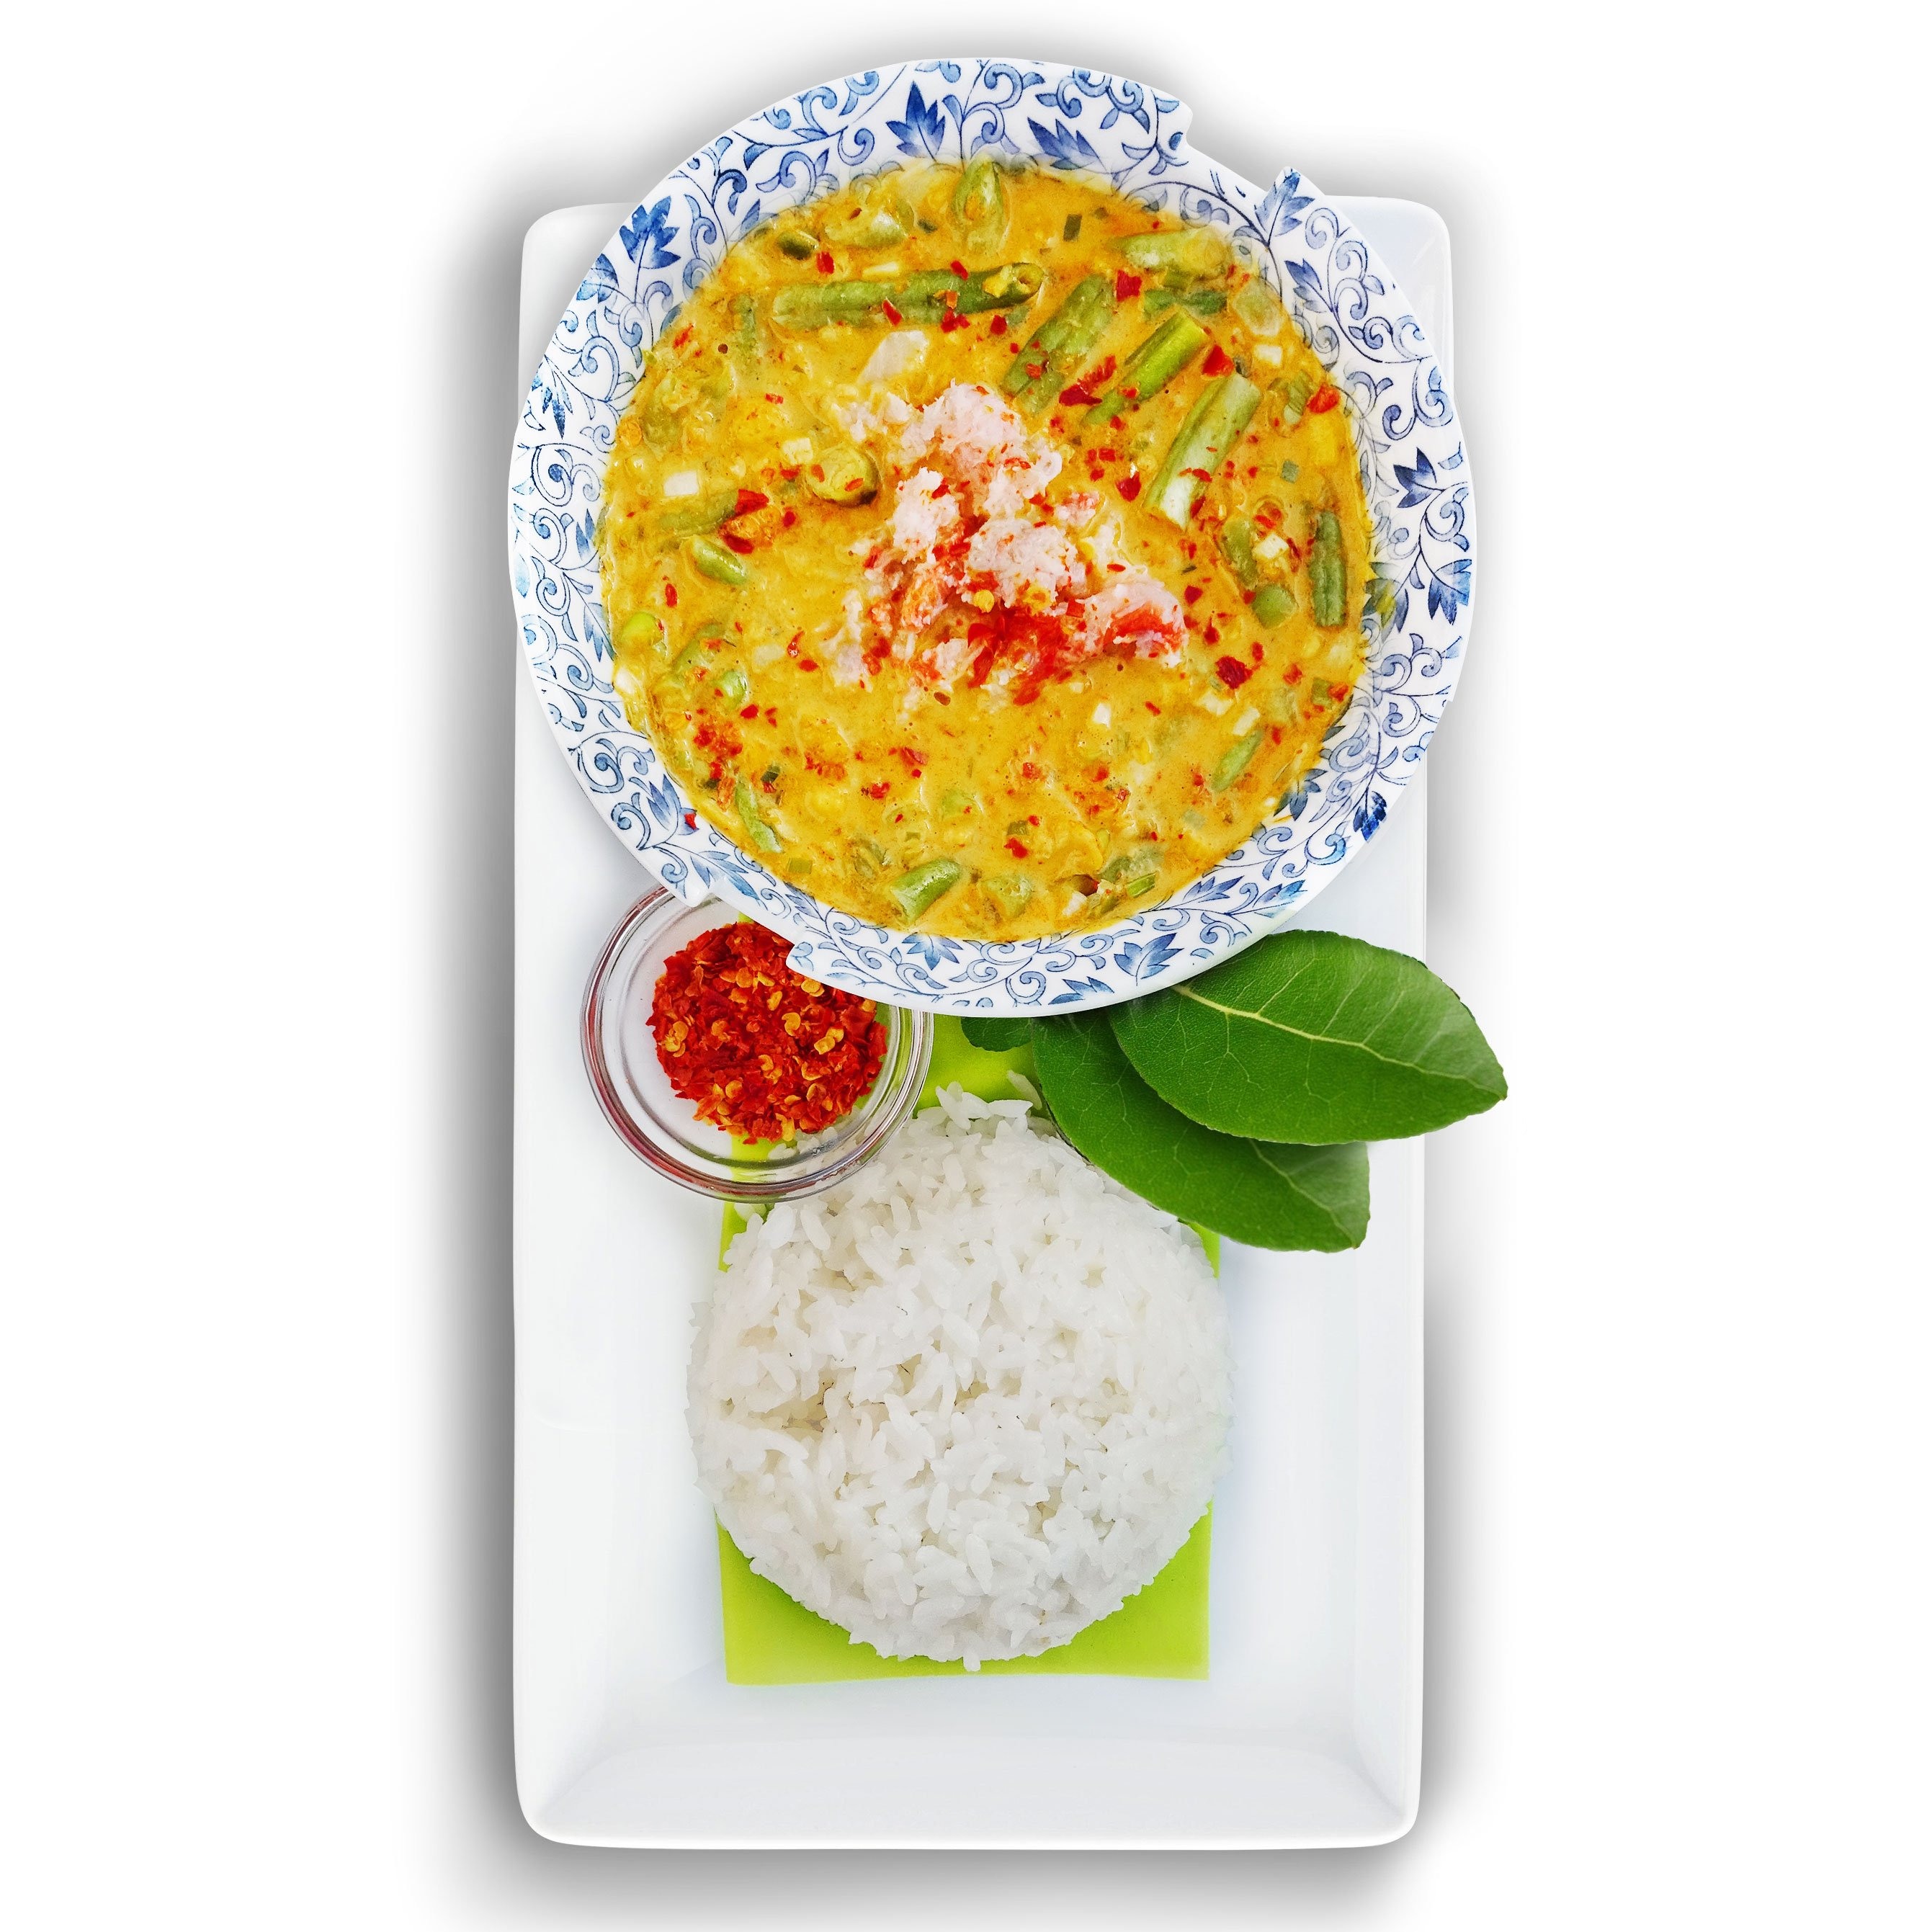 Takeout Kit, 4 Servings, Thai Crab Curry Meal Kit